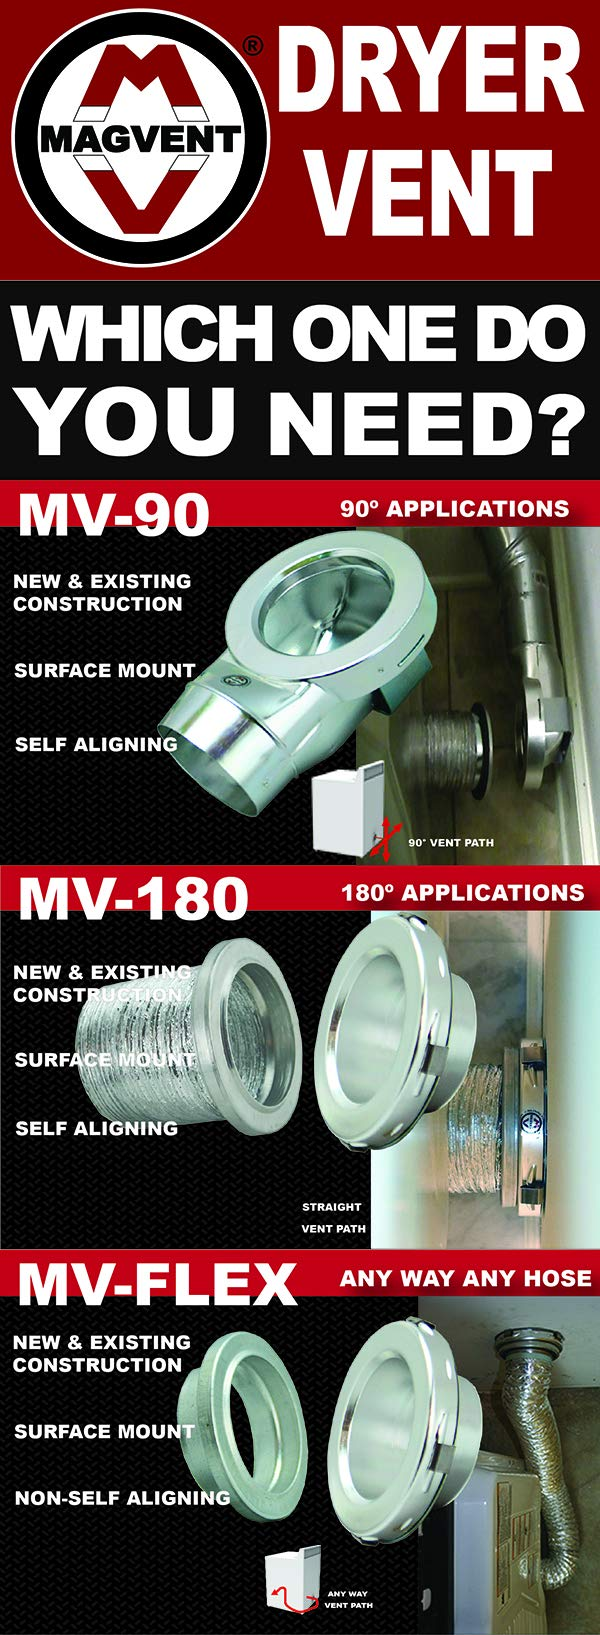 MagVent MV-180 gsdgg 123 by MagVent